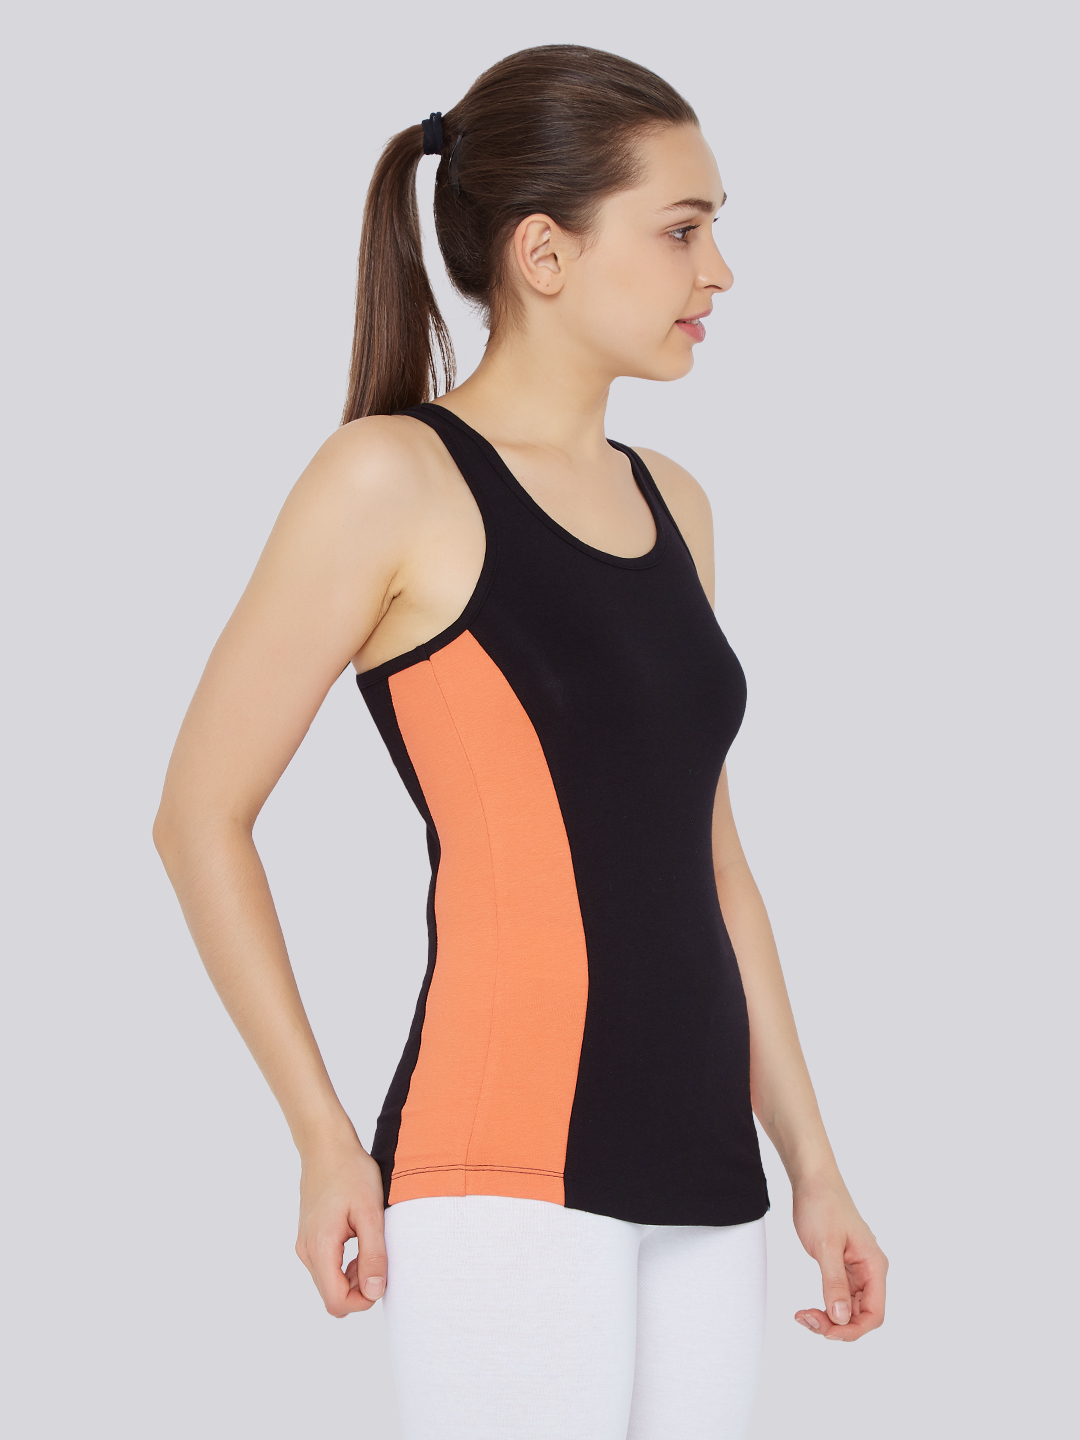 Womens Signature Racerback - Black  Orange - Bamboo Tribe-7224